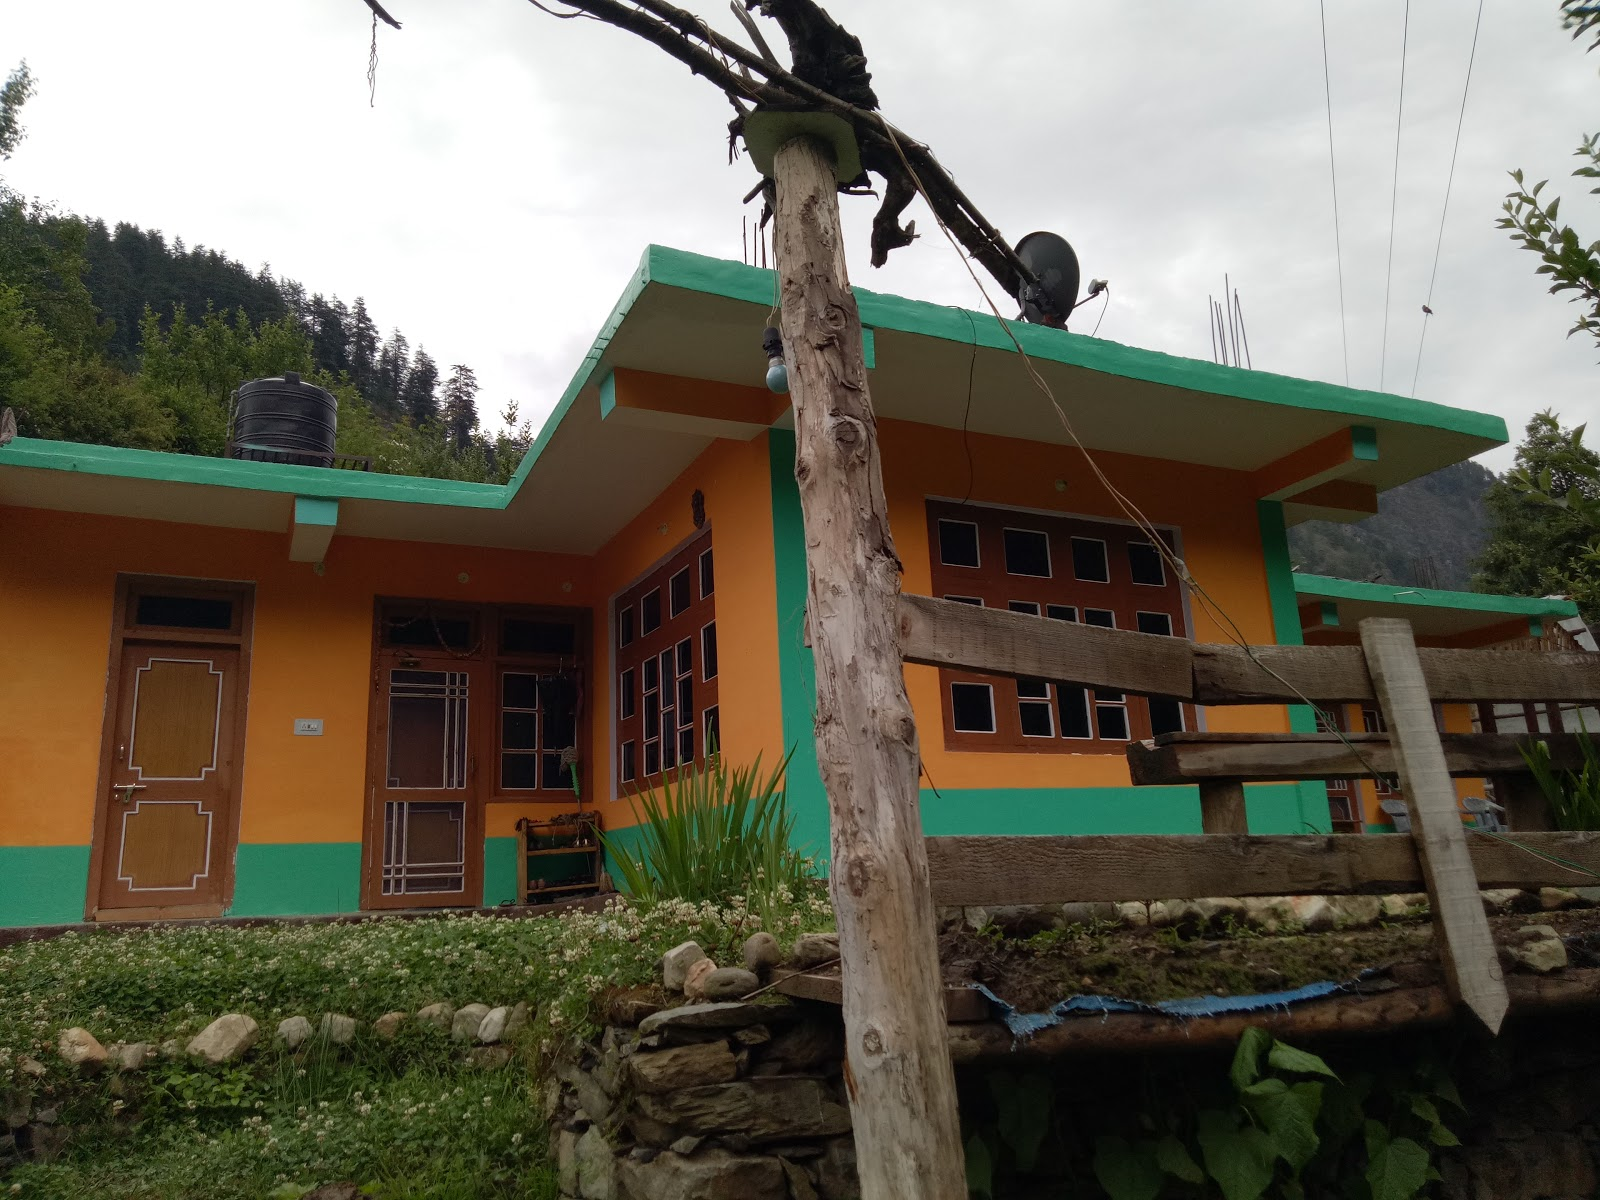 Hotel Dev Conifers Green Lambhari Hills Home Stayghiyagi River Side View Around Guides